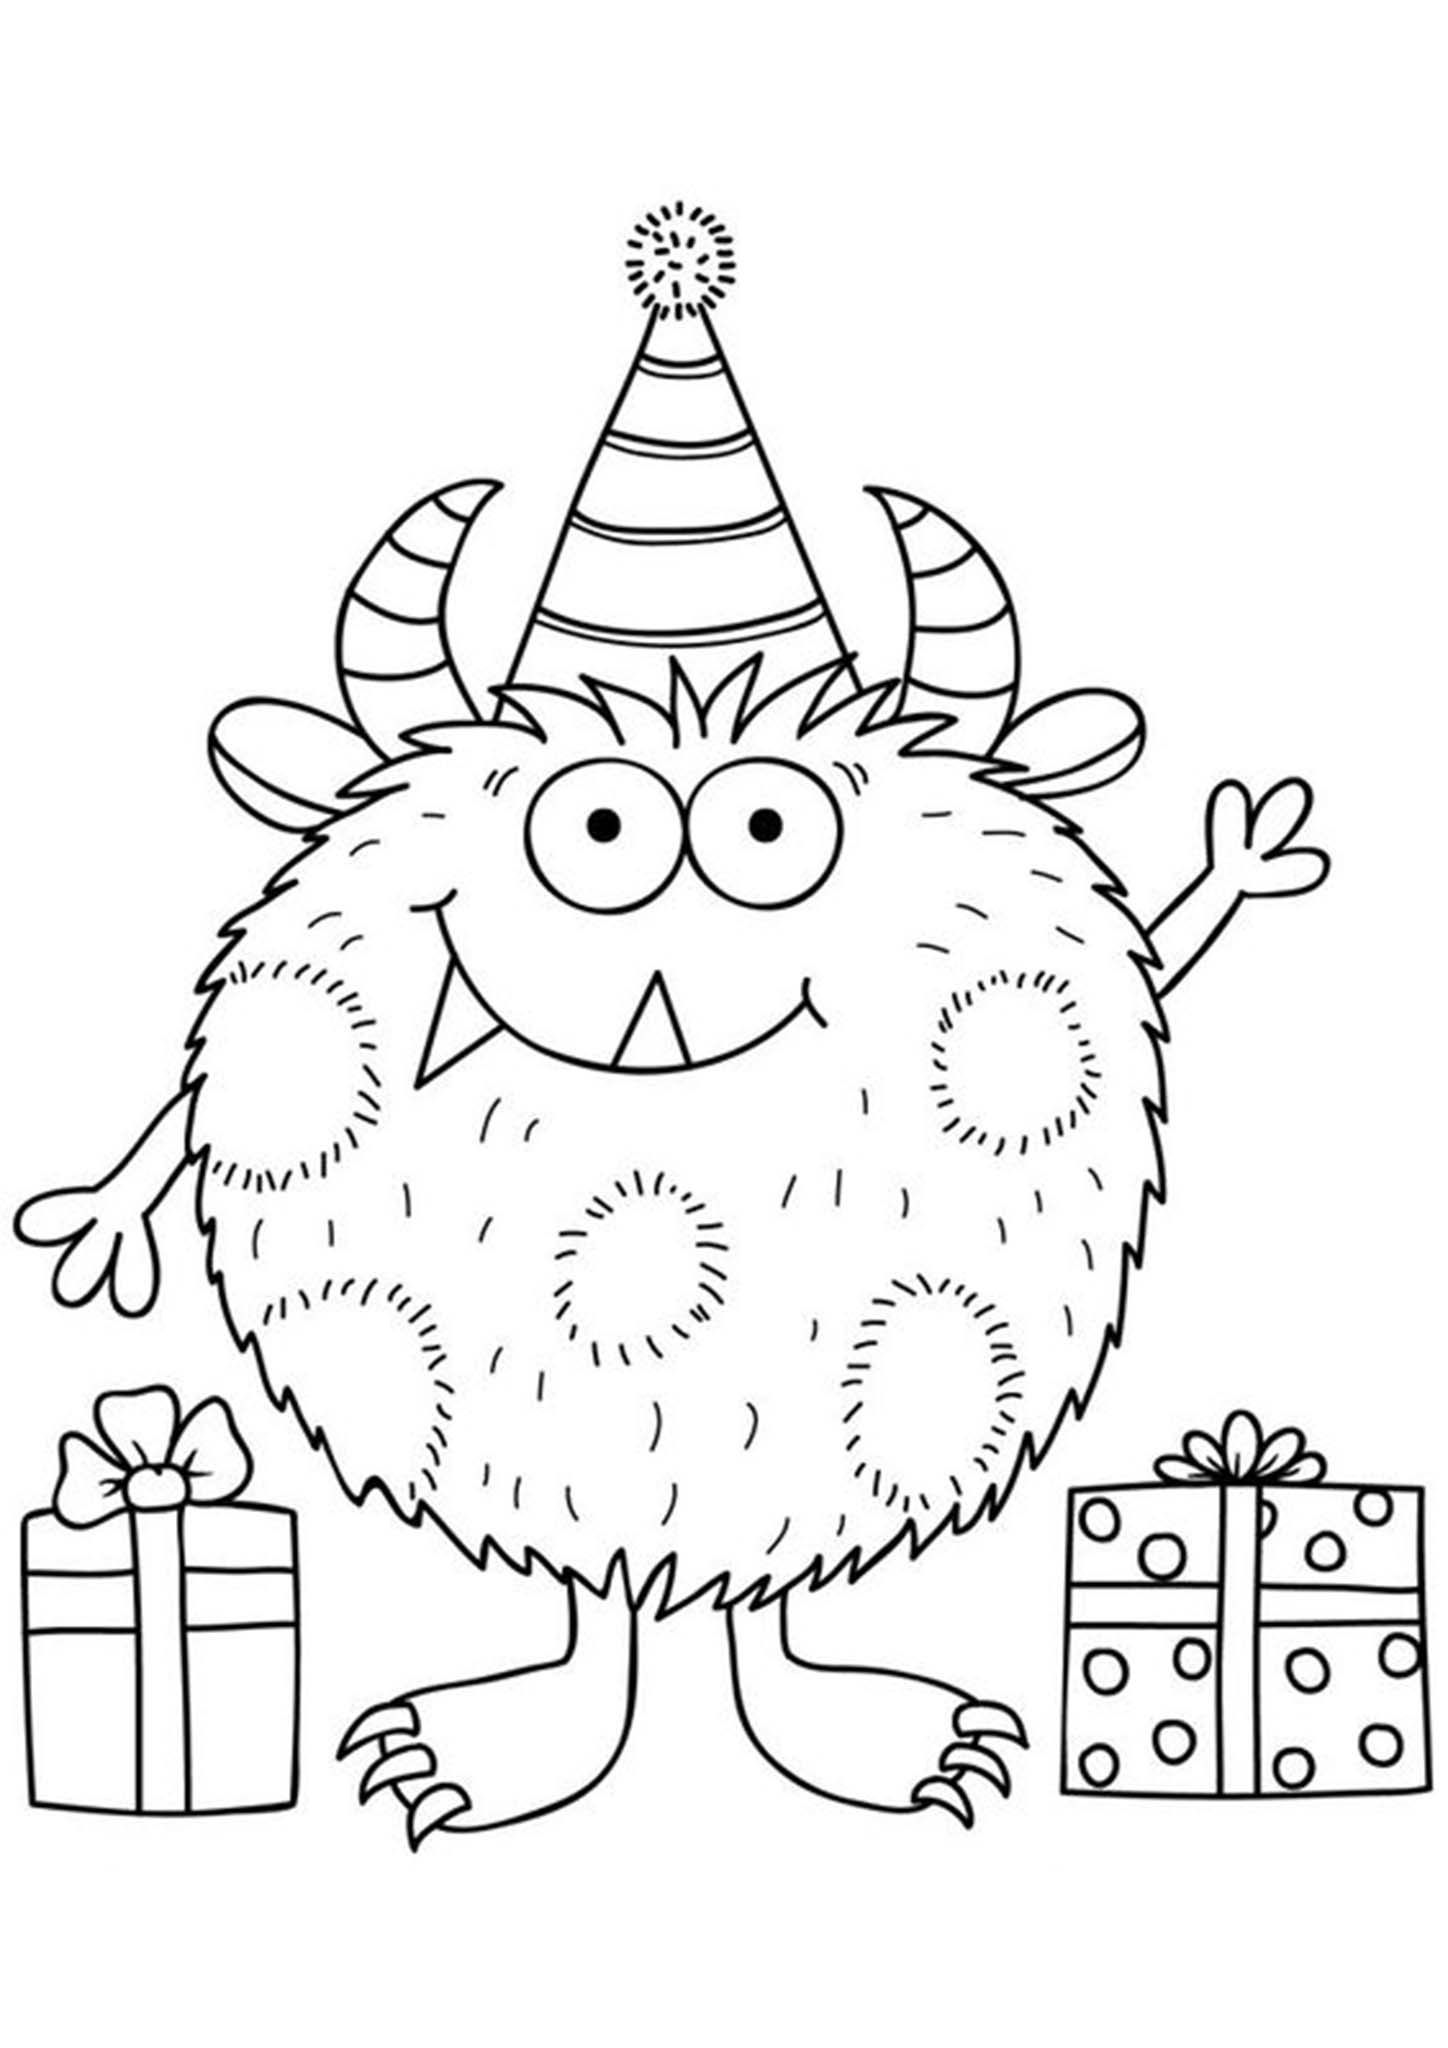 Free Easy To Print Monster Coloring Pages In 2021 Monster Coloring Pages Birthday Coloring Pages Monster Quilt